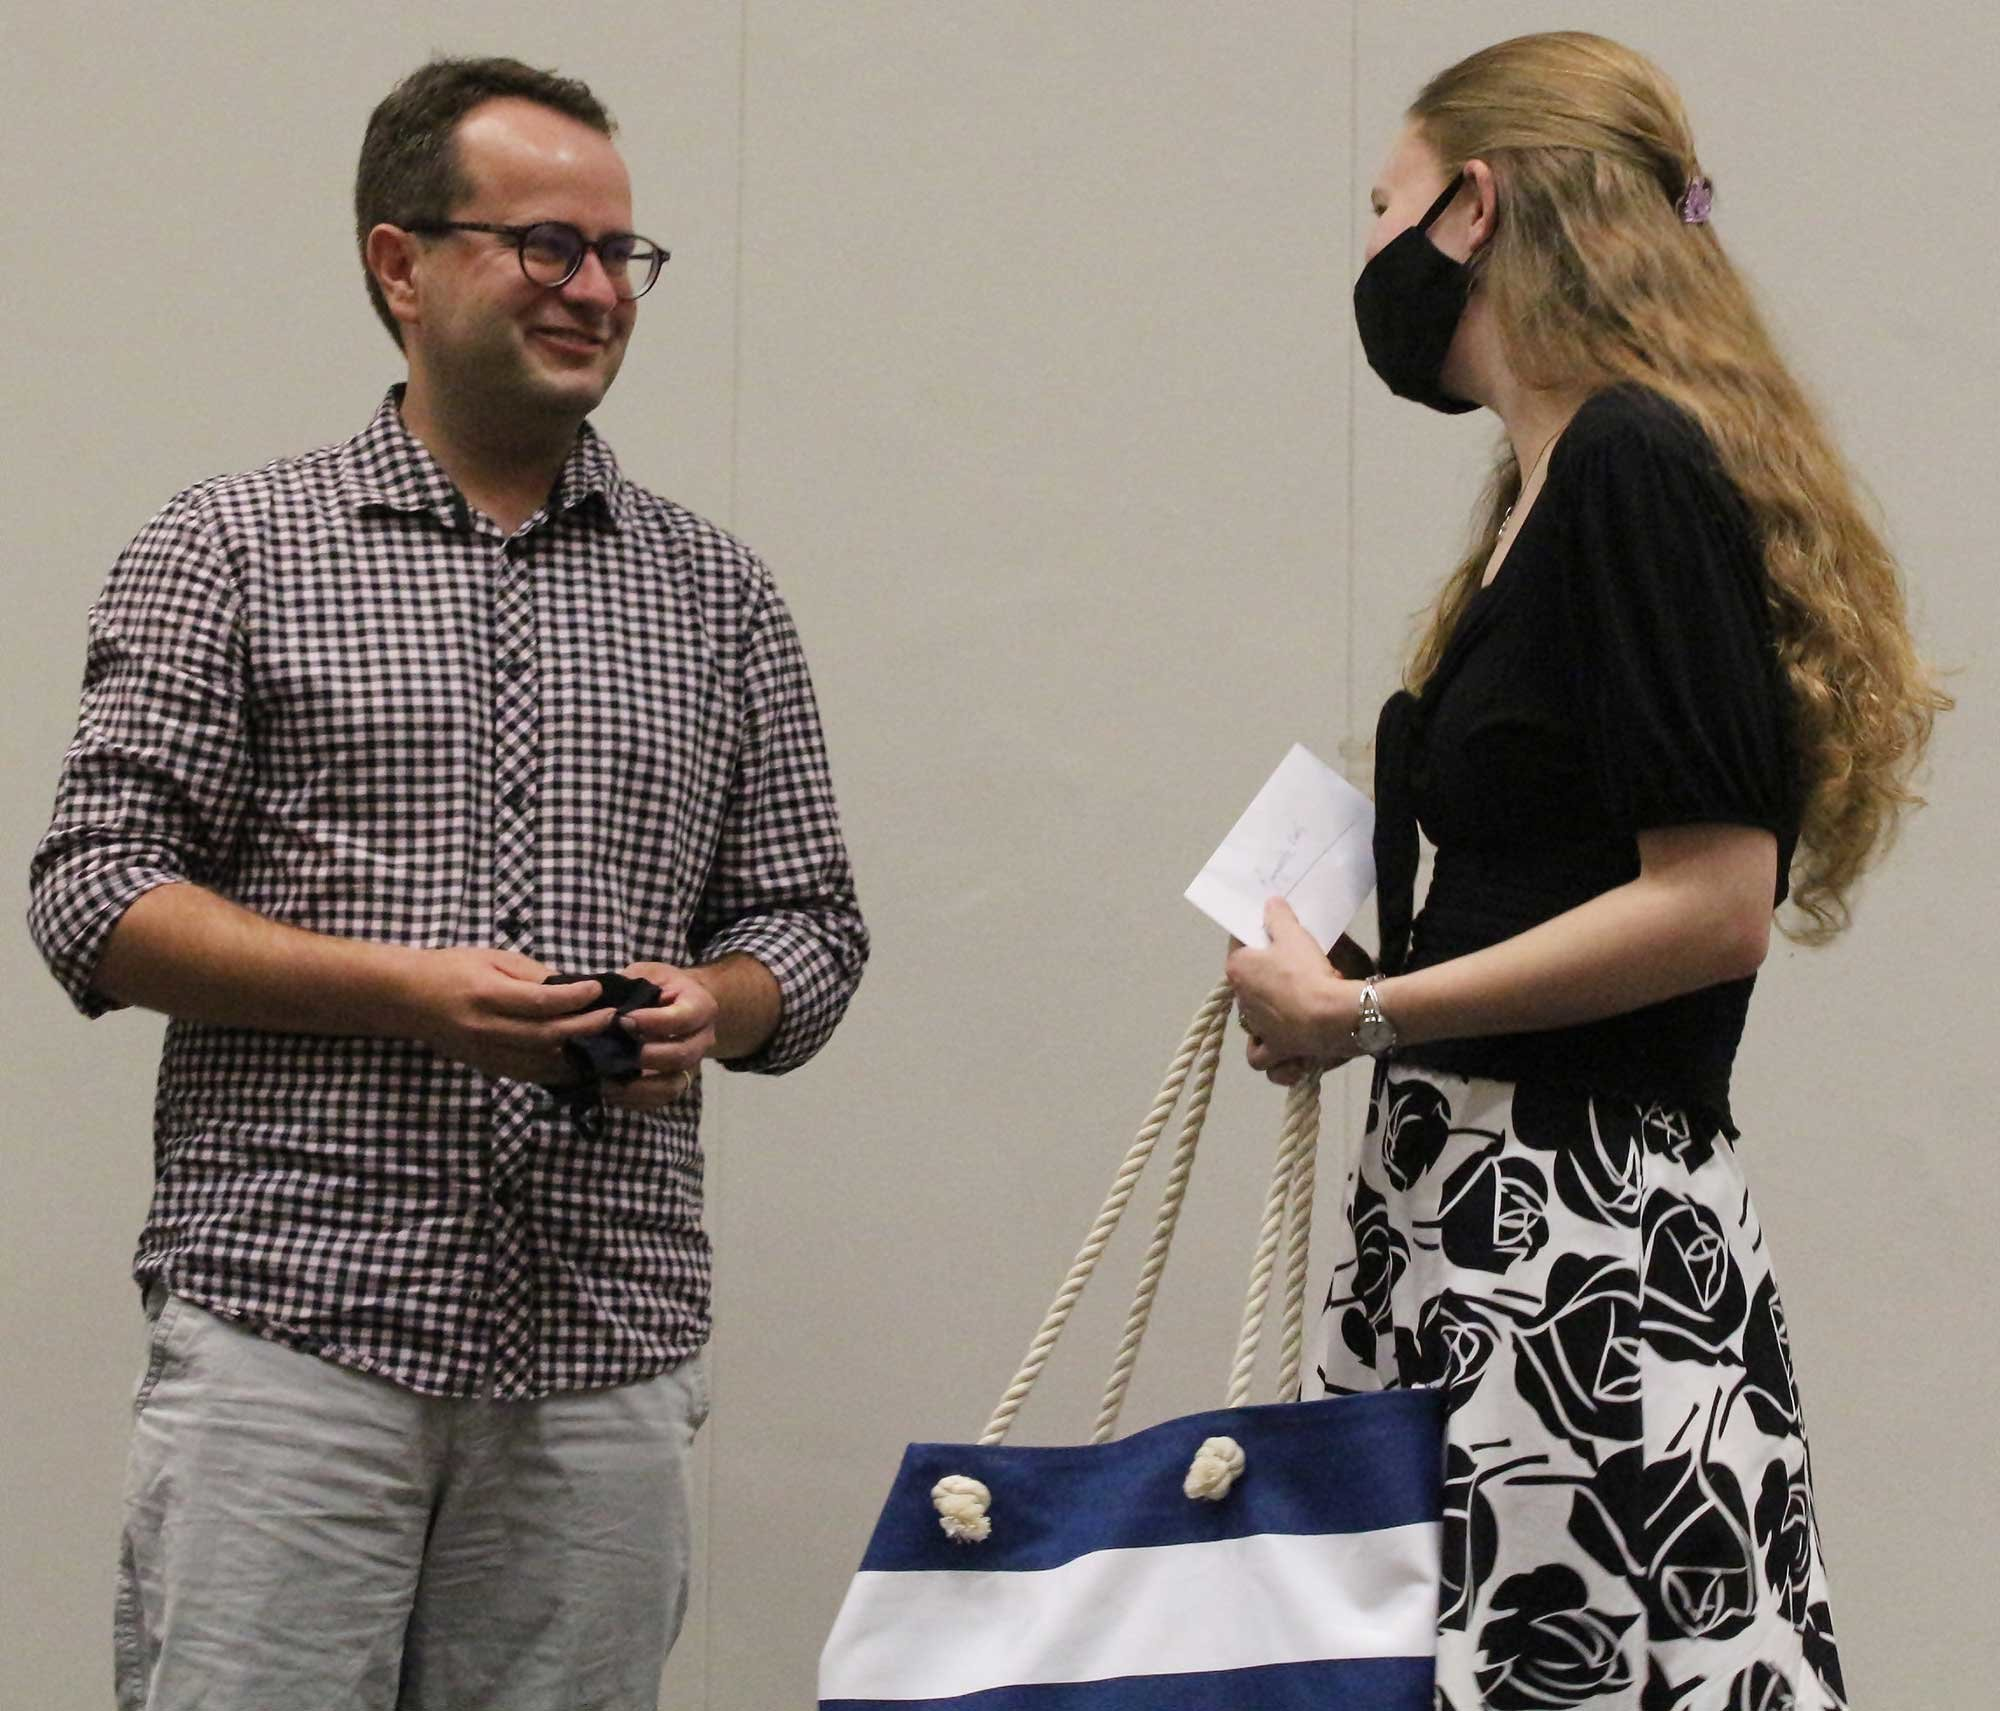 Marguerite Ewert receives the Folio Prize for best student in the Honours Degree in Translation at the University of Stellenbosch from Johan Botha.